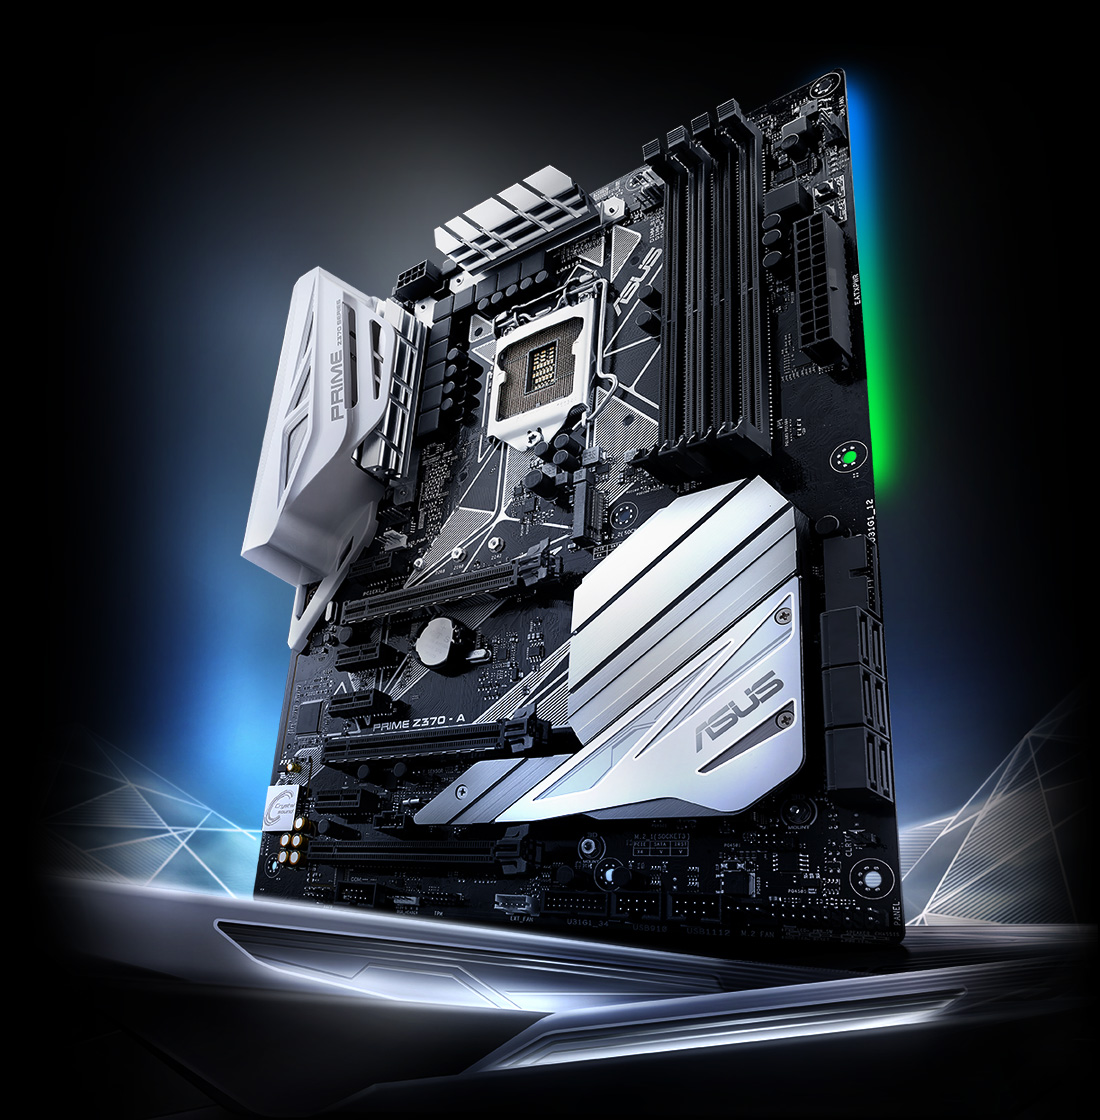 PRIME Z370-A | Motherboards | ASUS United Kingdom